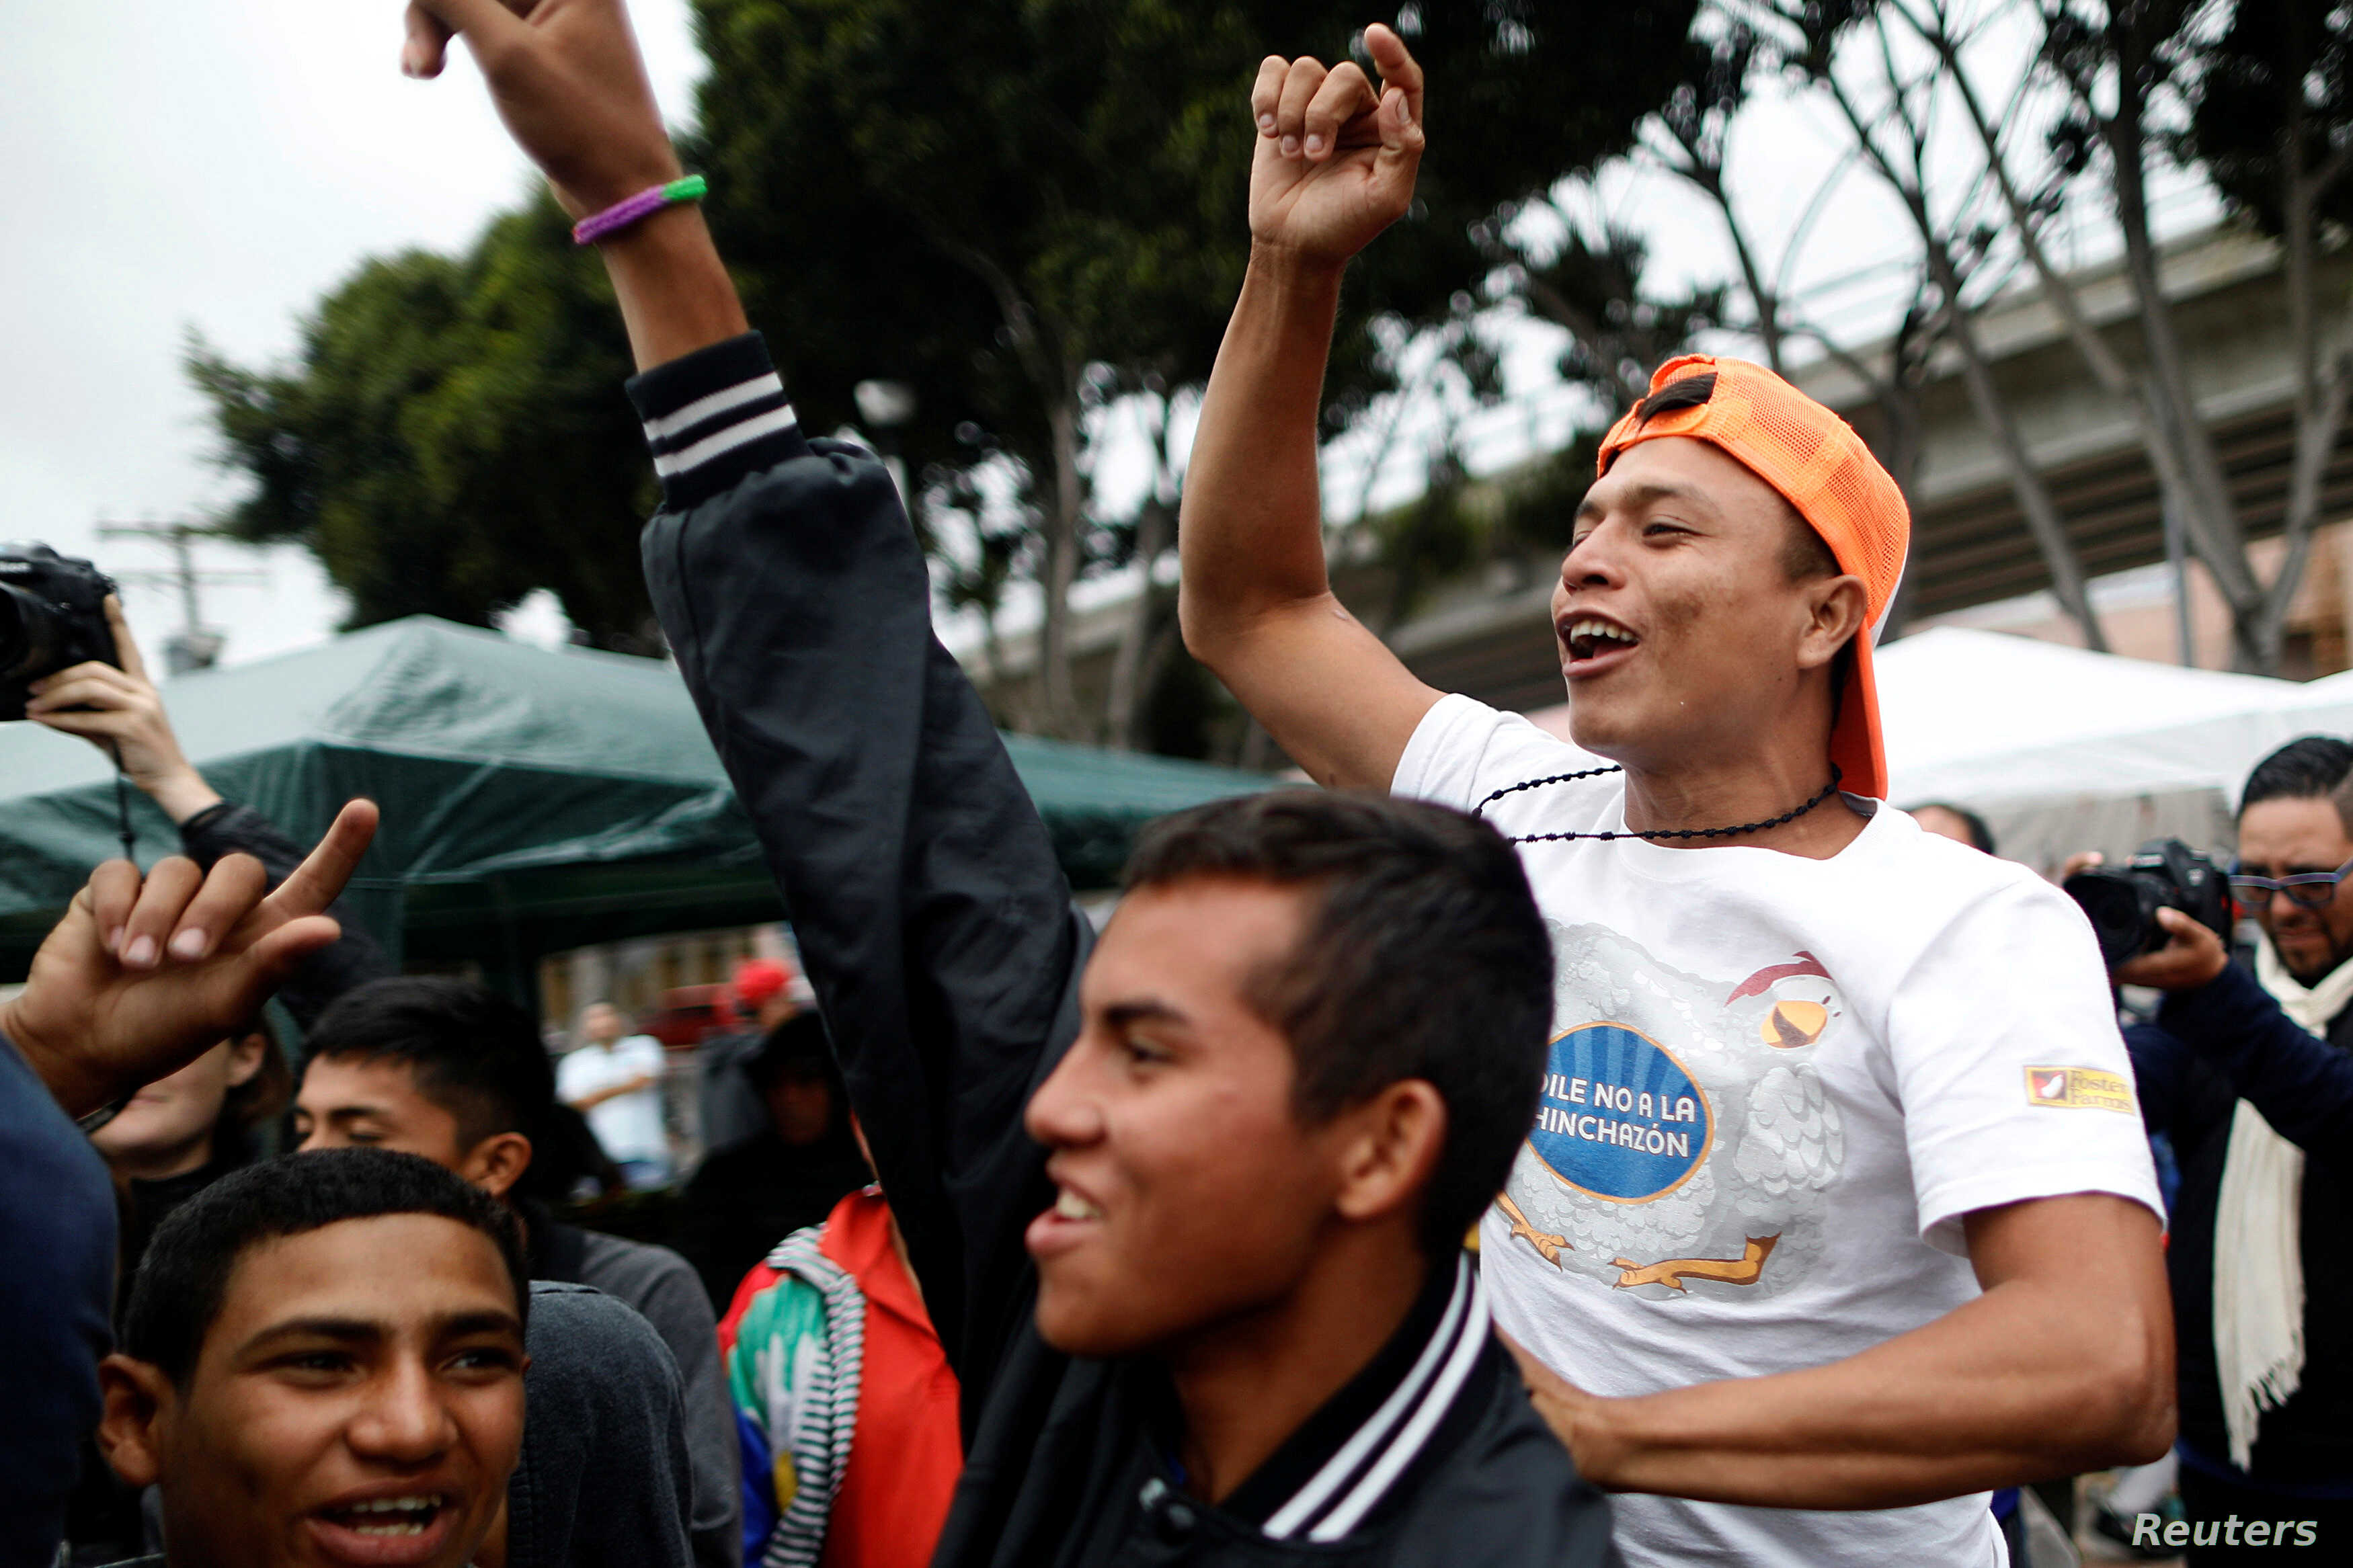 Members of a caravan of migrants from Central America react near the San Ysidro checkpoint as the first fellow migrants entered U.S. territory to seek asylum on Monday, in Tijuana, Mexico, April 30, 2018.